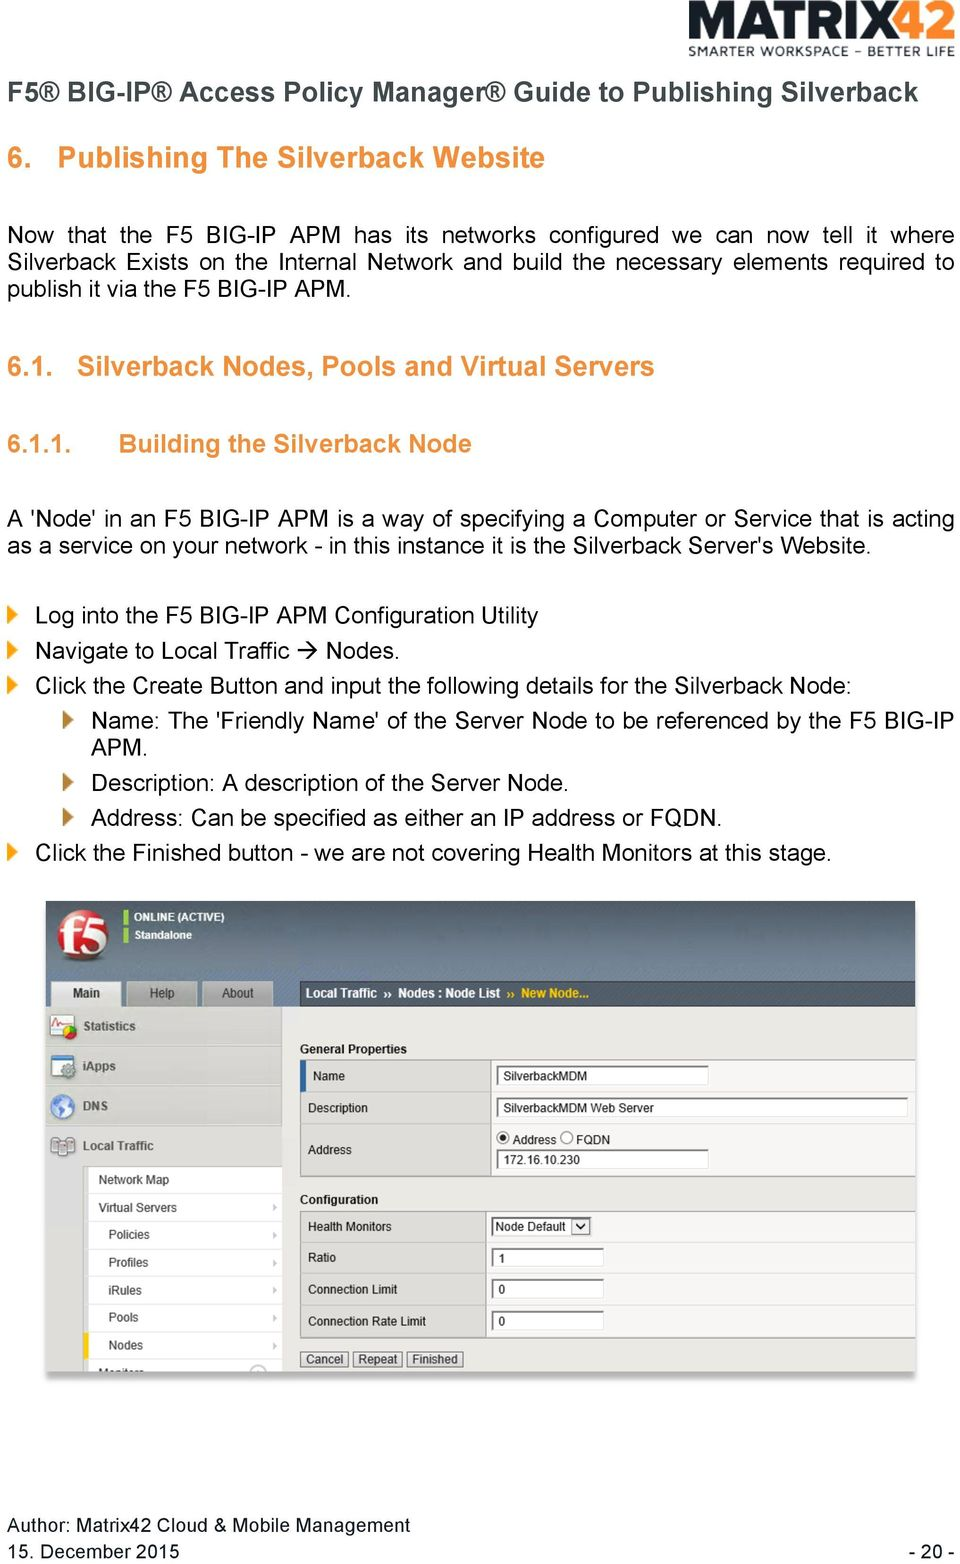 Silverback by Matrix42 F5 BIG-IP Access Policy Manager Guide to